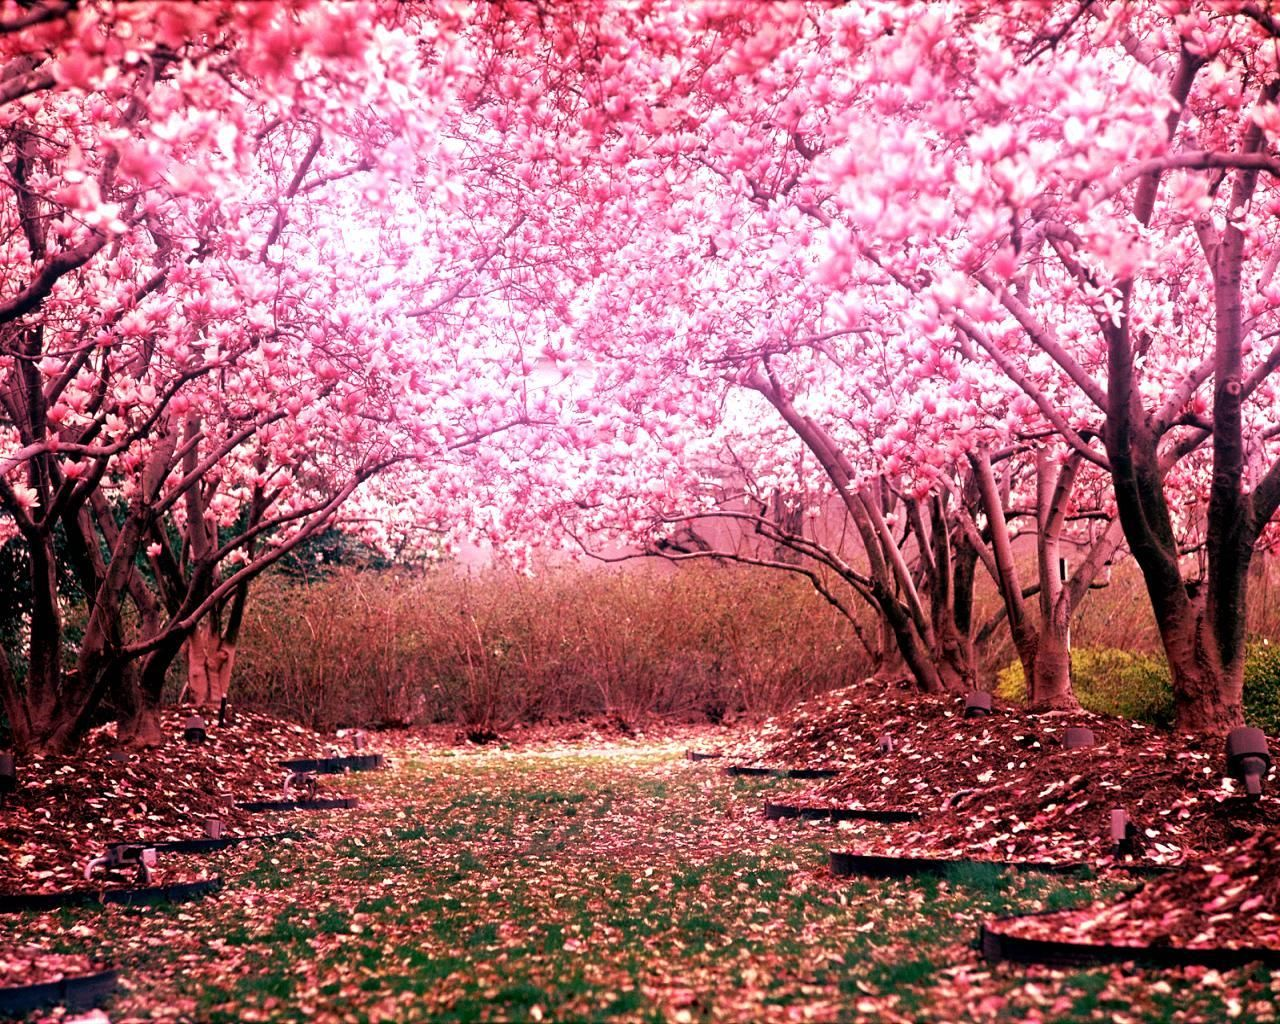 Cherry Blossom Landscape Wallpaper Cherry Blossom Background Cherry Blossom Wallpaper Spring Desktop Wallpaper